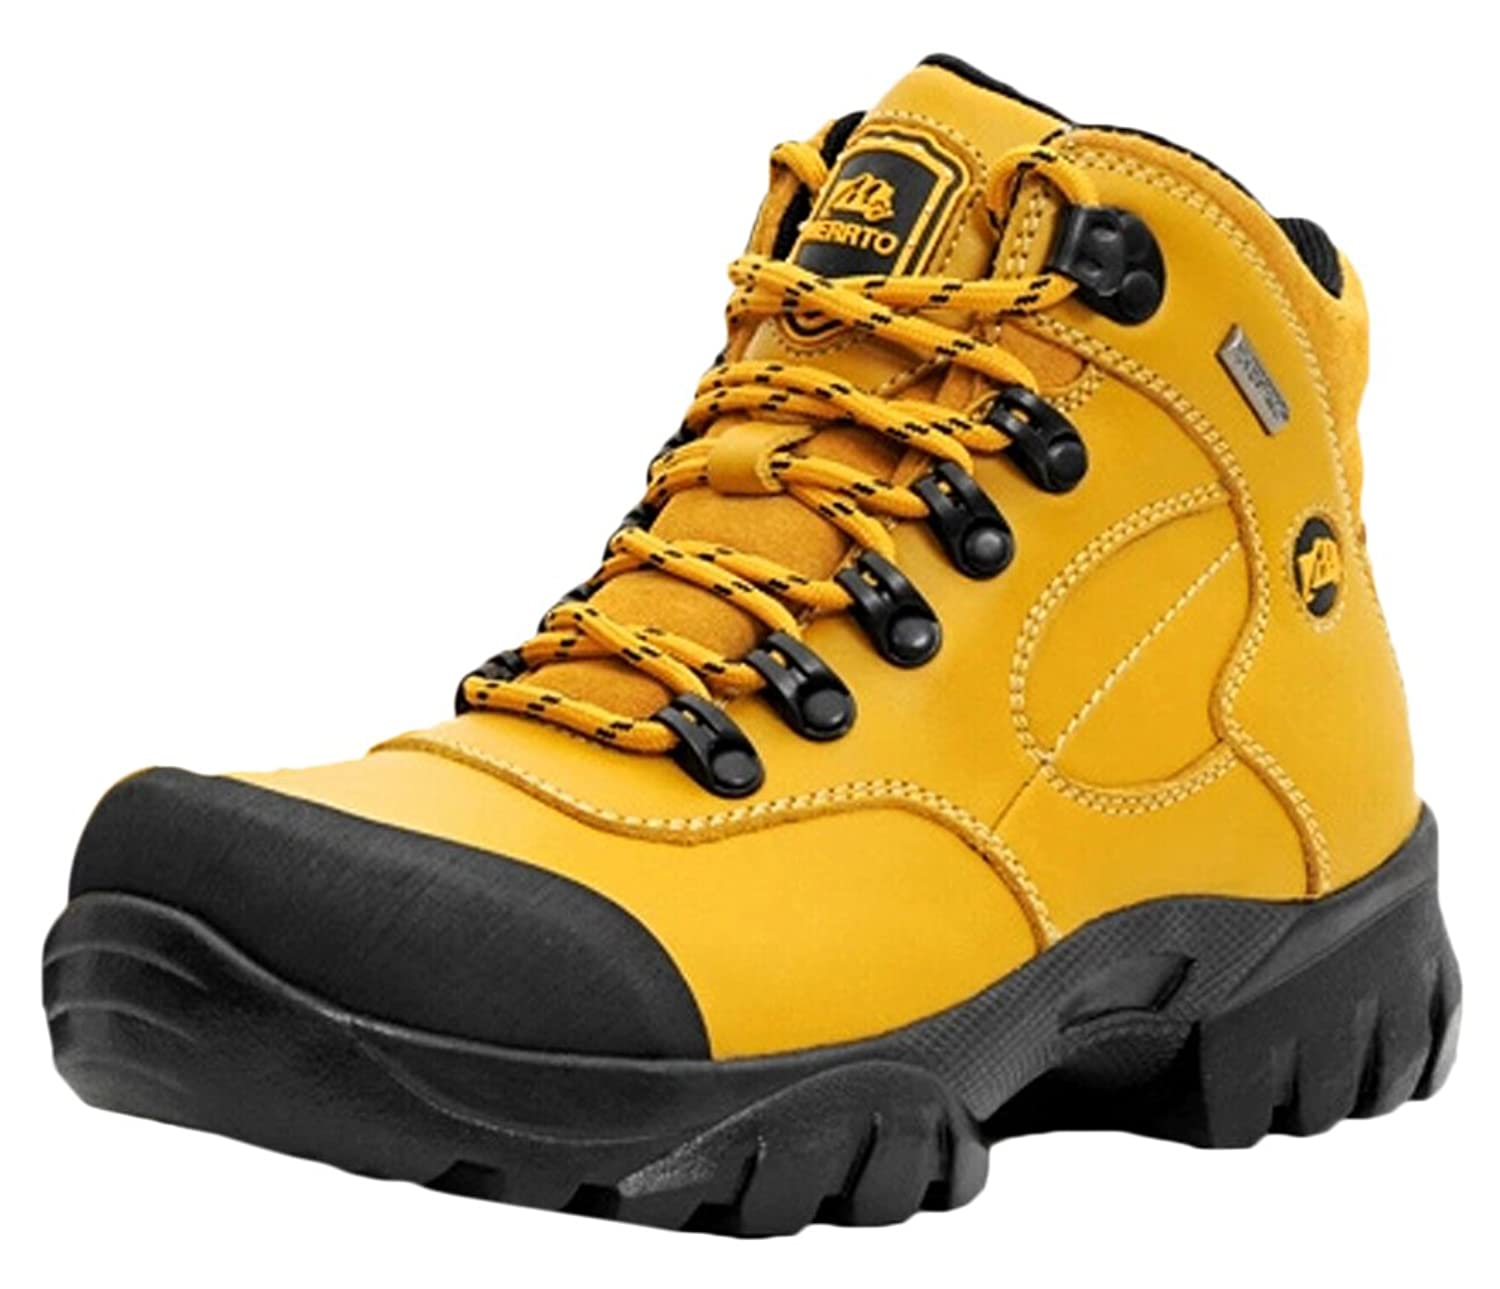 Ace Women's High-top Waterproof Anti-skid Outdoor Mountain Boots Hiking Shoes (7, yellow)